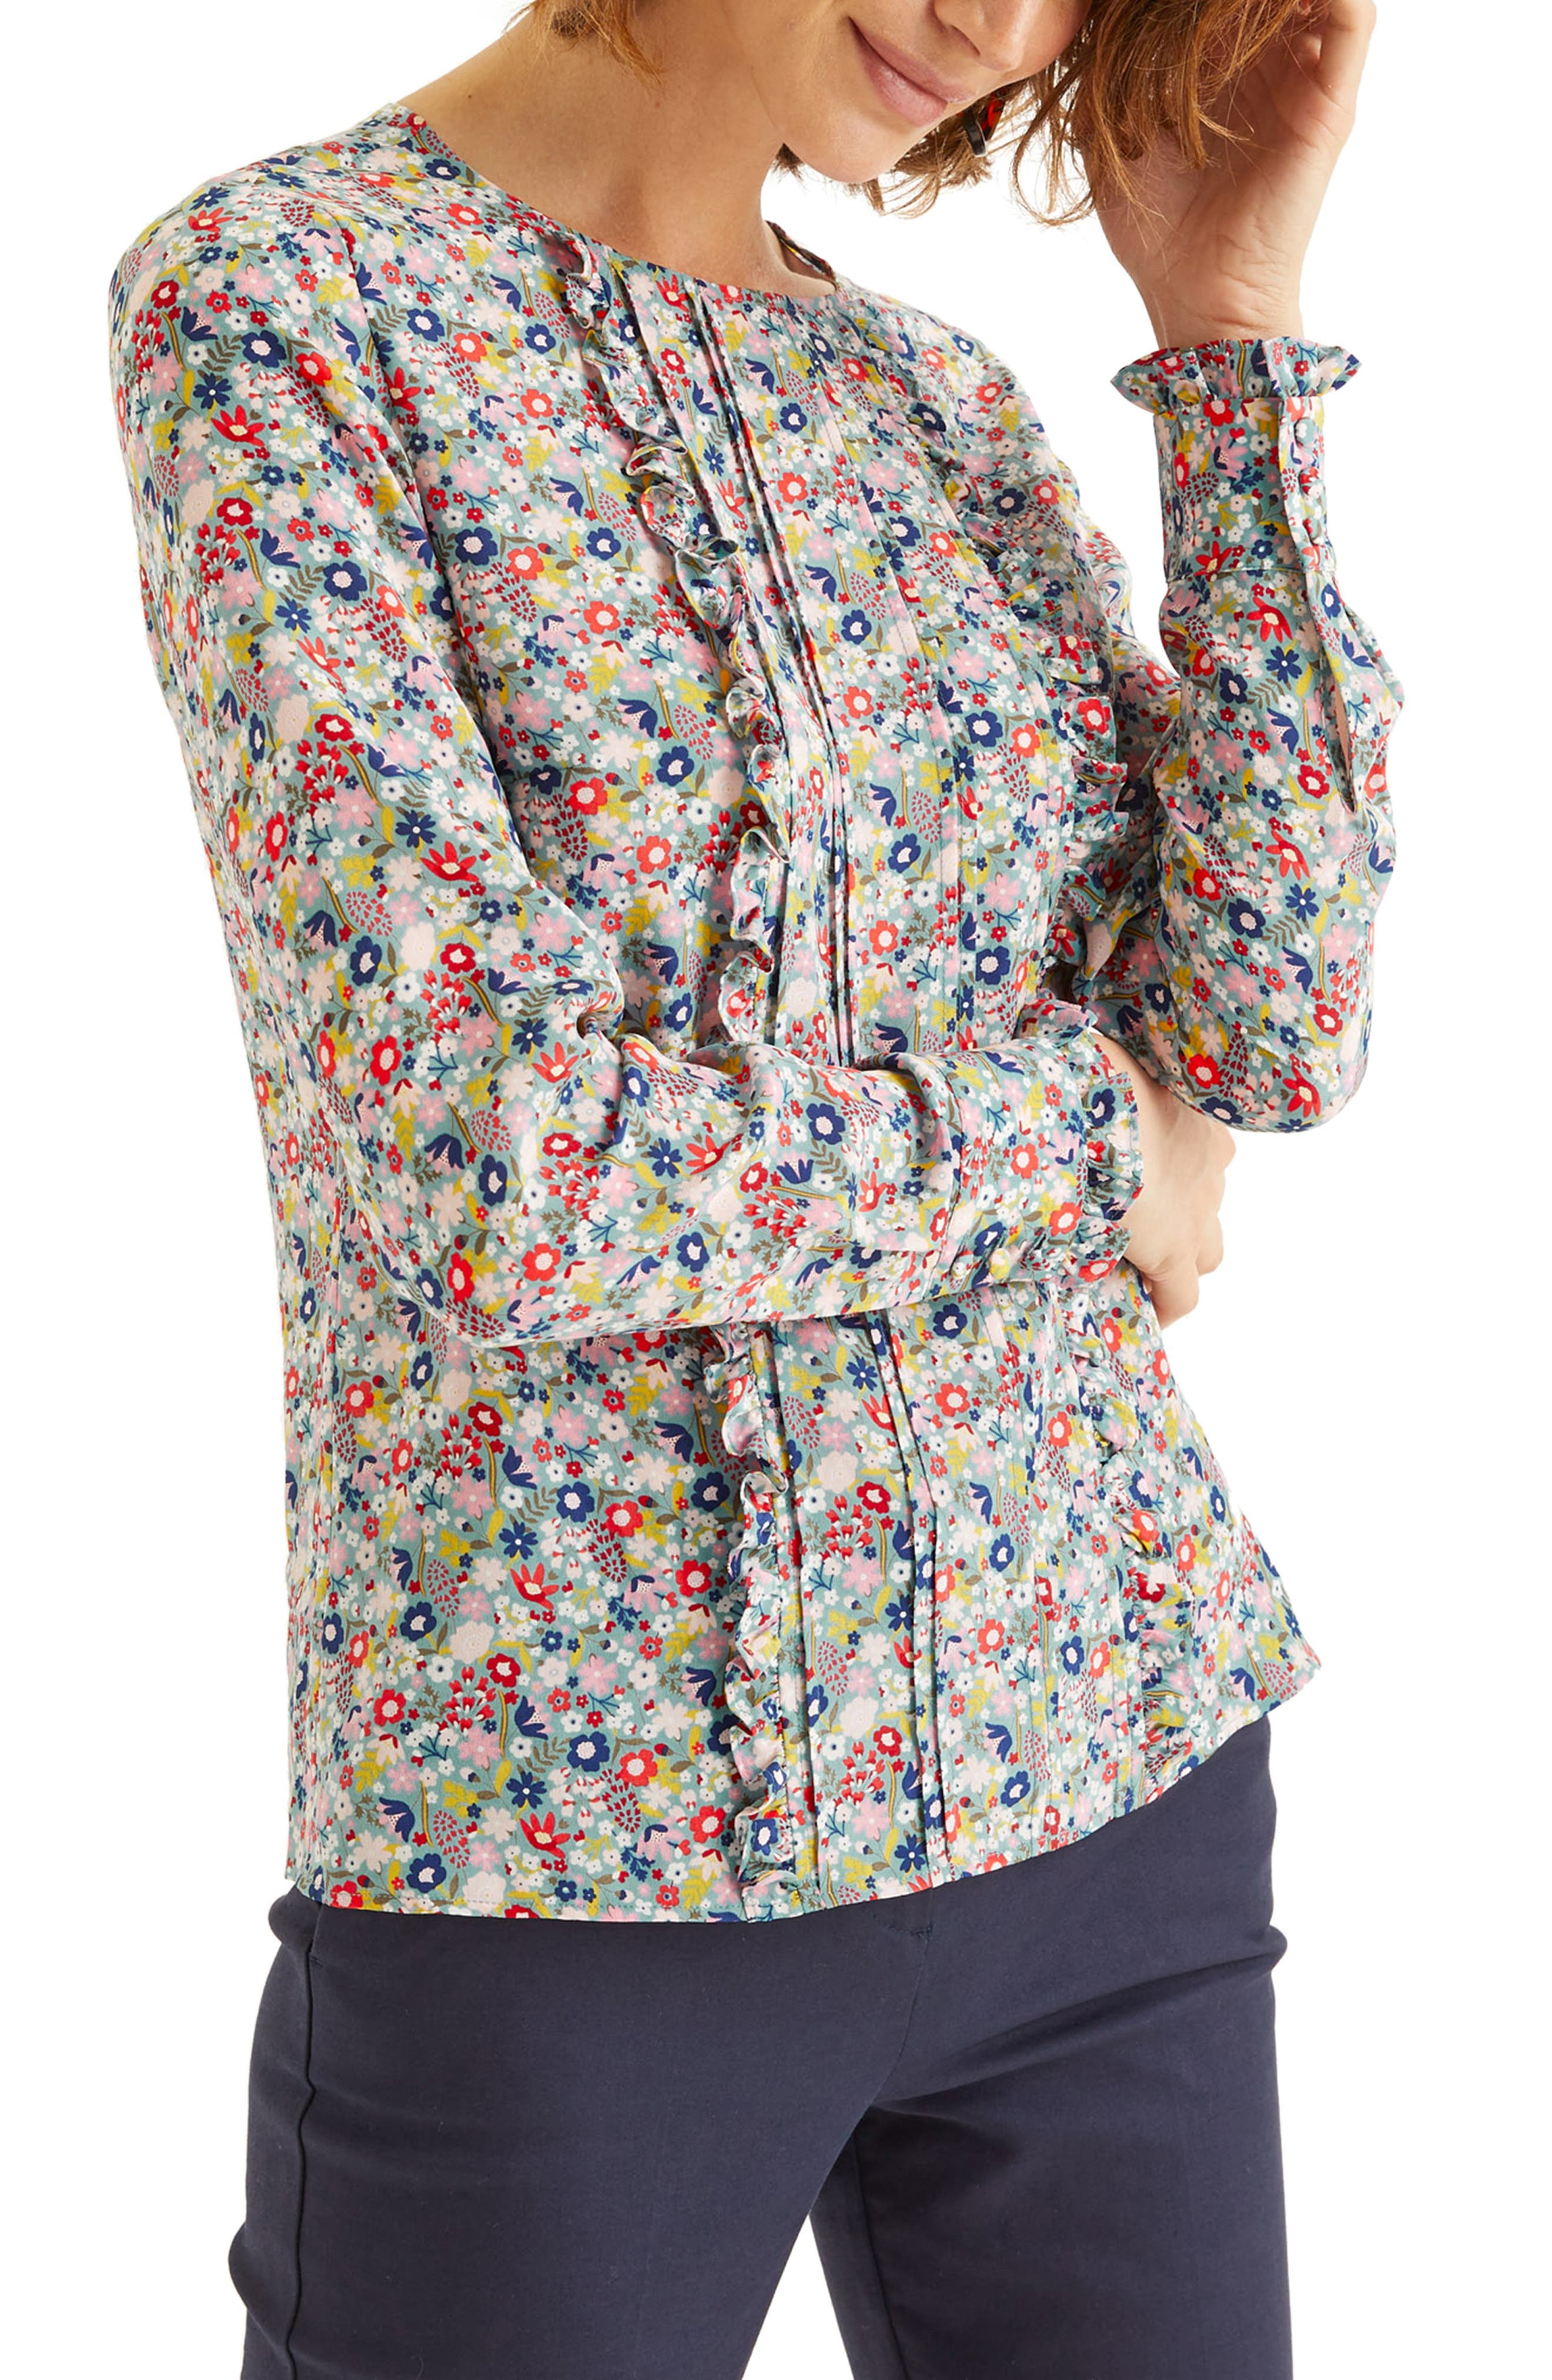 Every WomenNordstrom To WhereLooks Boden Occasion For Wear l3FJT1Kc